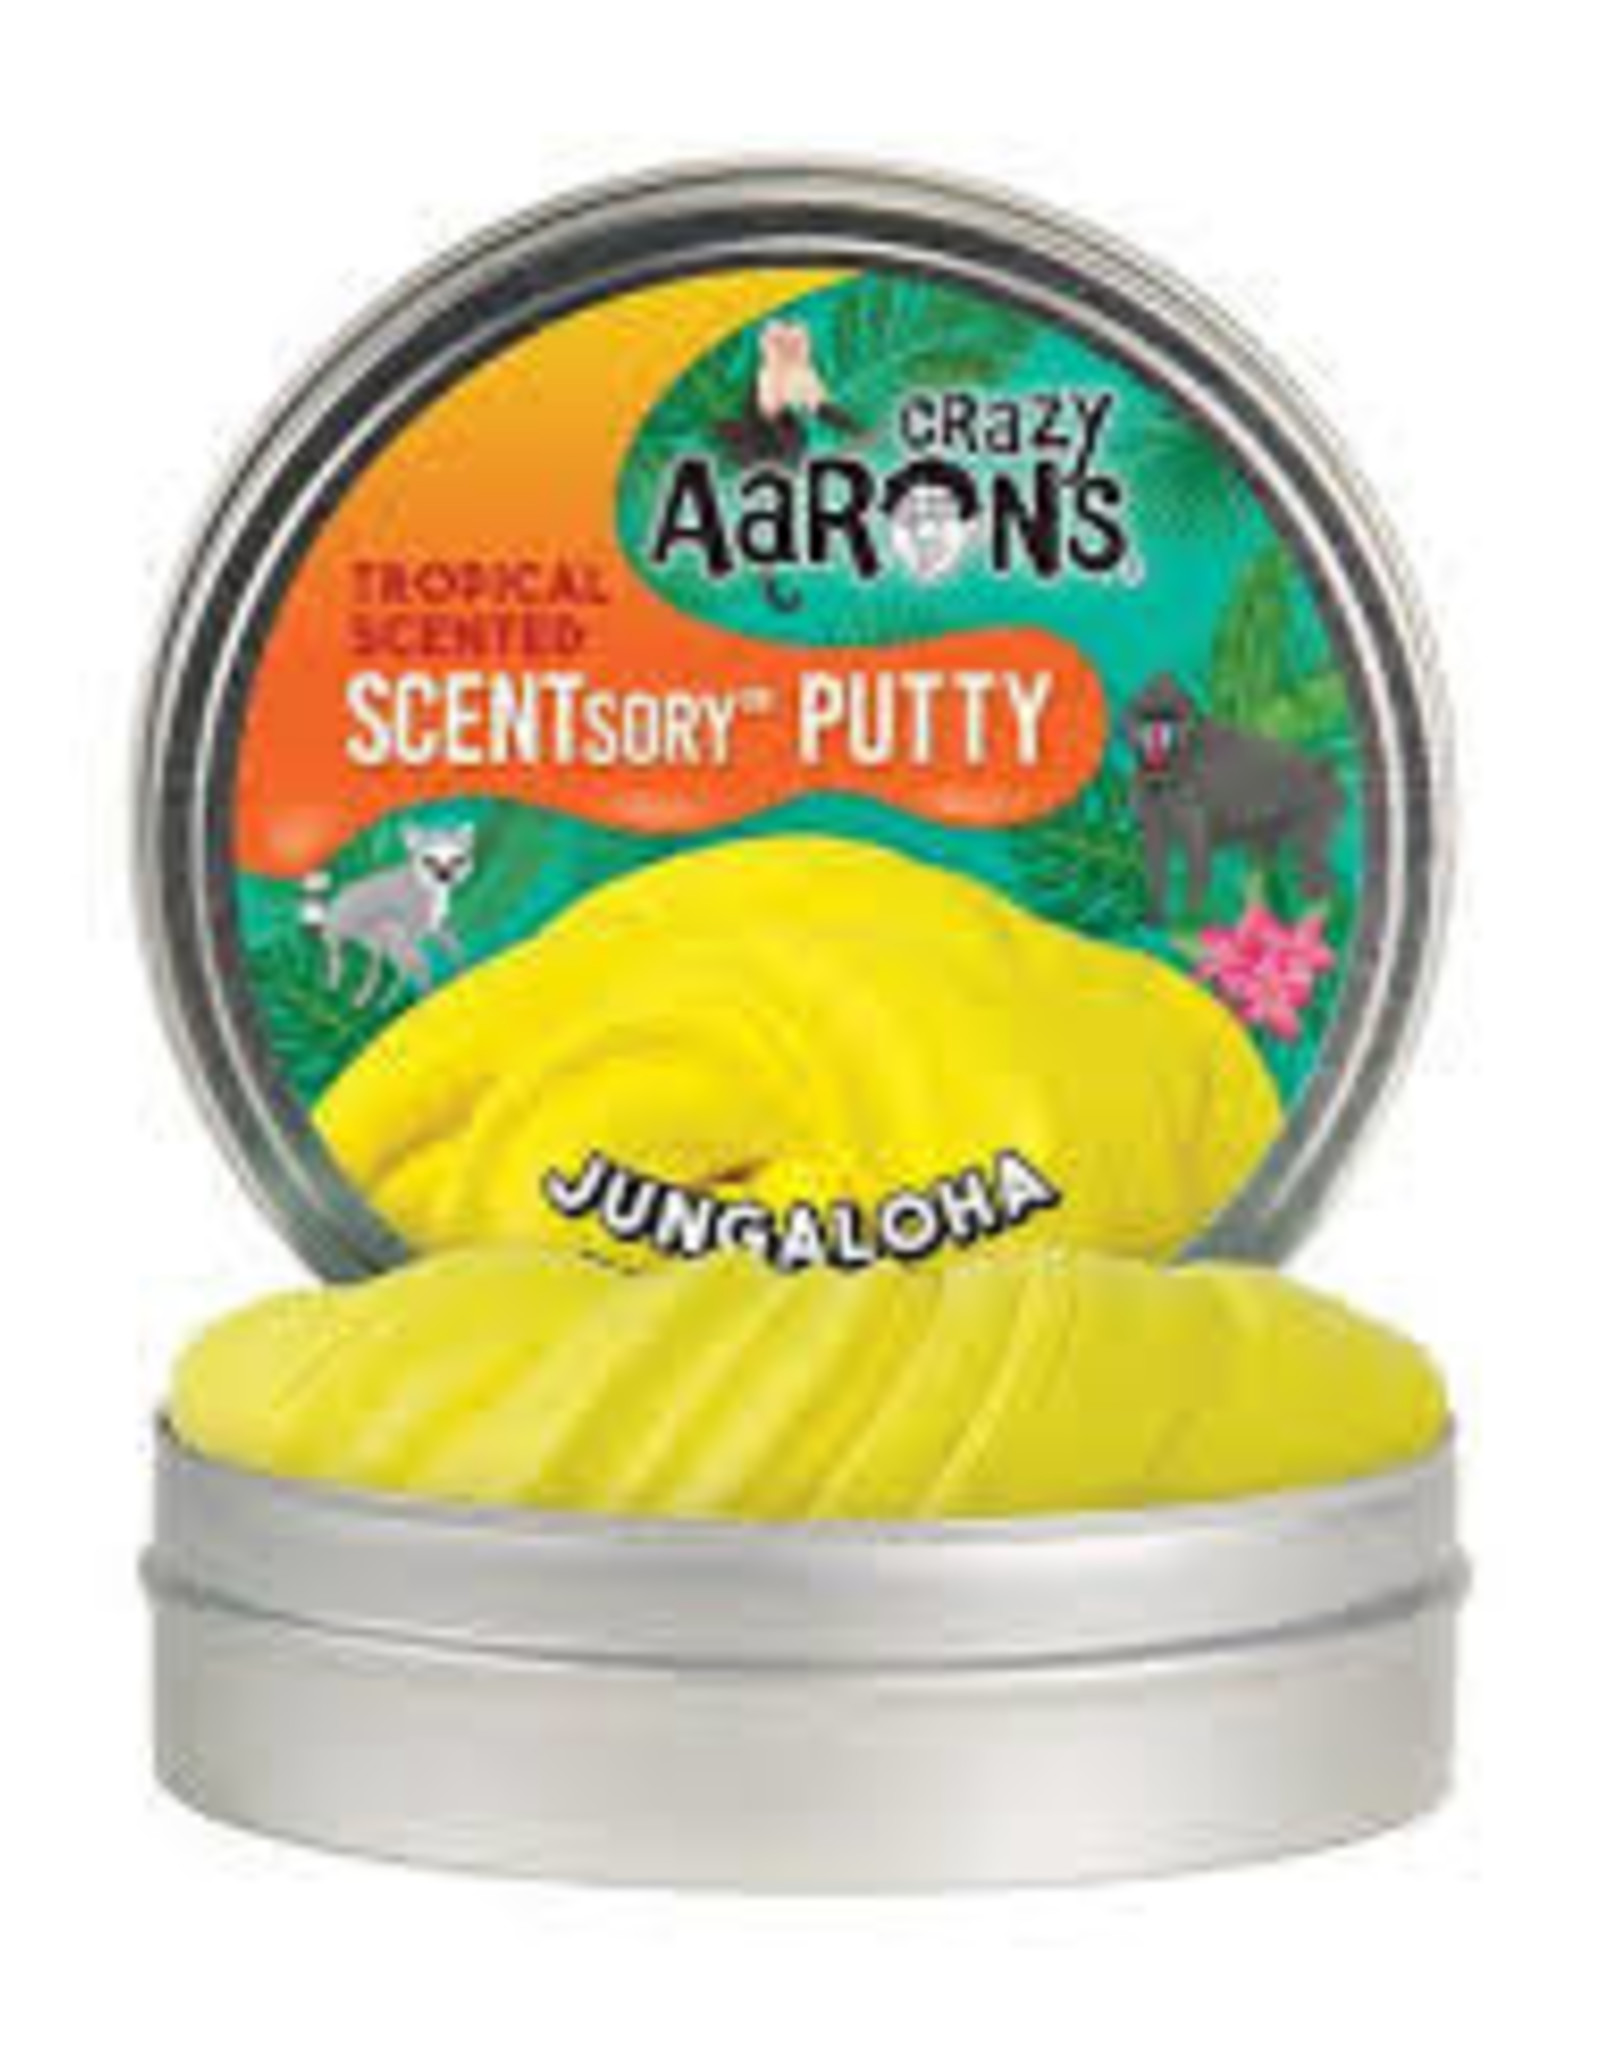 "Crazy Aaron's Thinking Putty Crazy Aaron's Tropical SCENTsory Putty 2.75"" Tins"